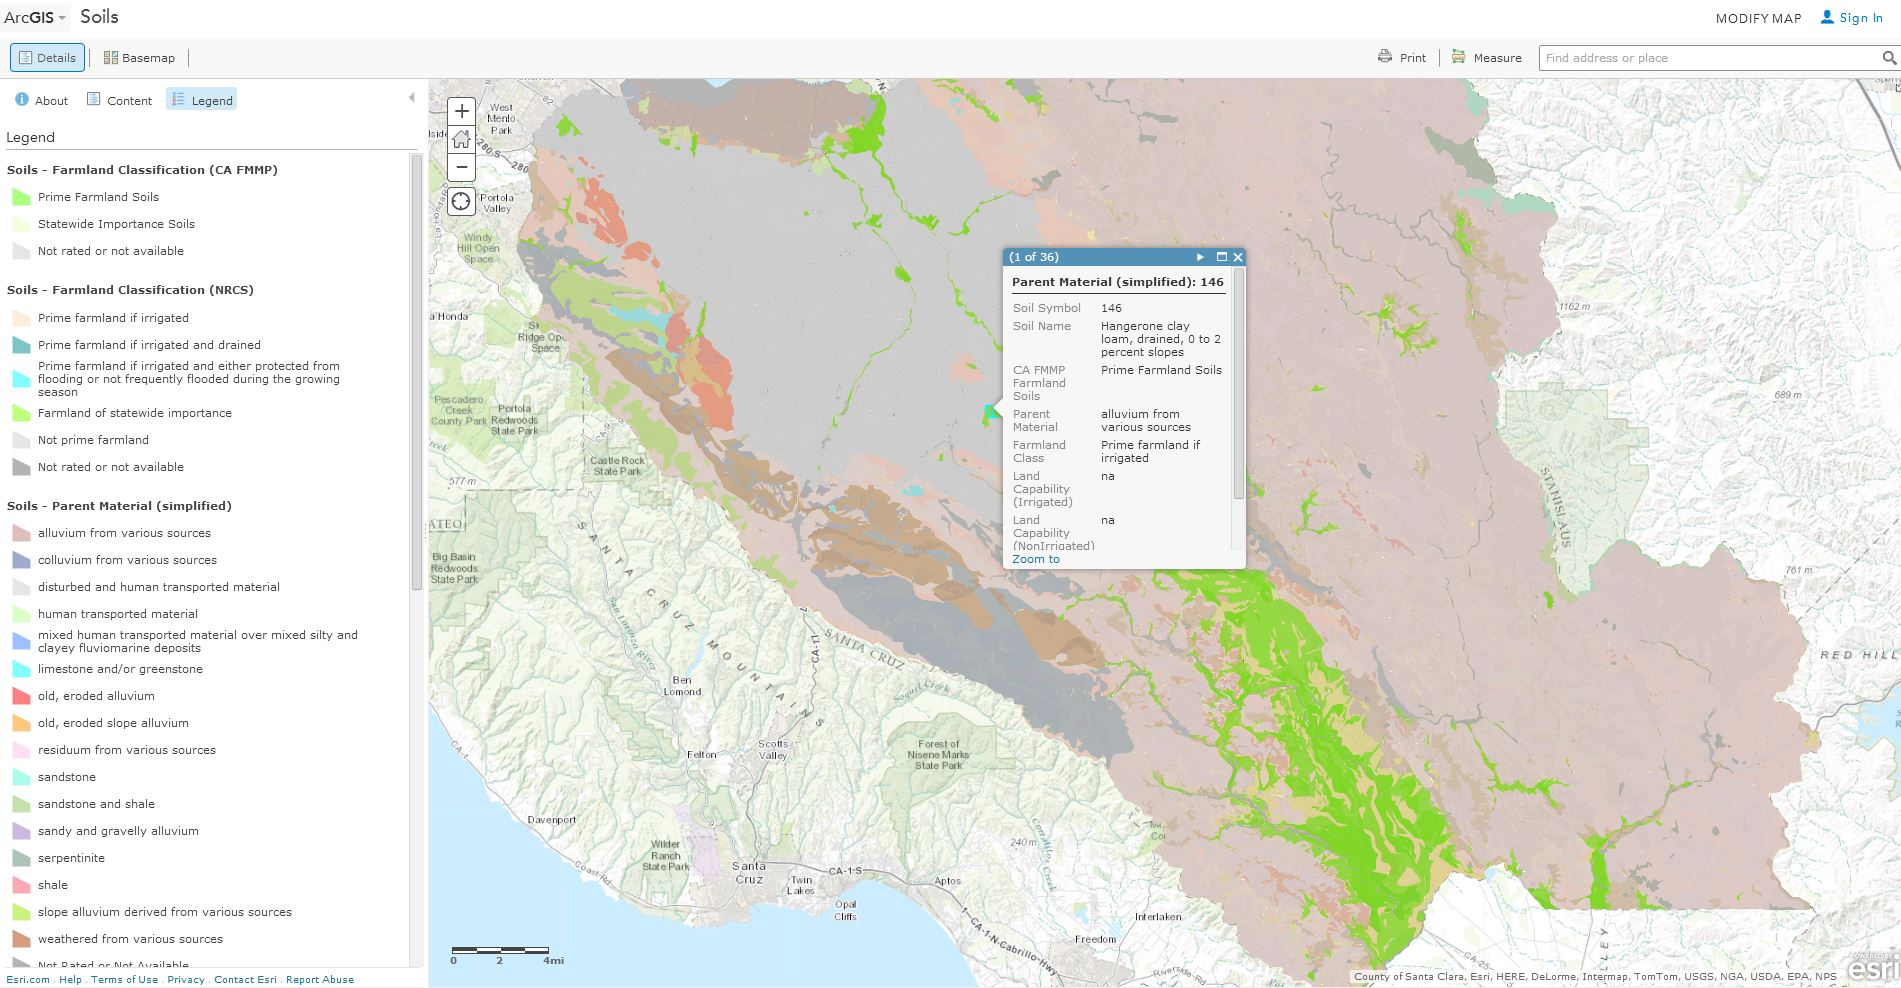 Arcgis living atlas of the world 2014 septe geonet santa clara county has successfully created this web map describing soils data this gis service maybe used in gis software and is optimized for esris gumiabroncs Choice Image